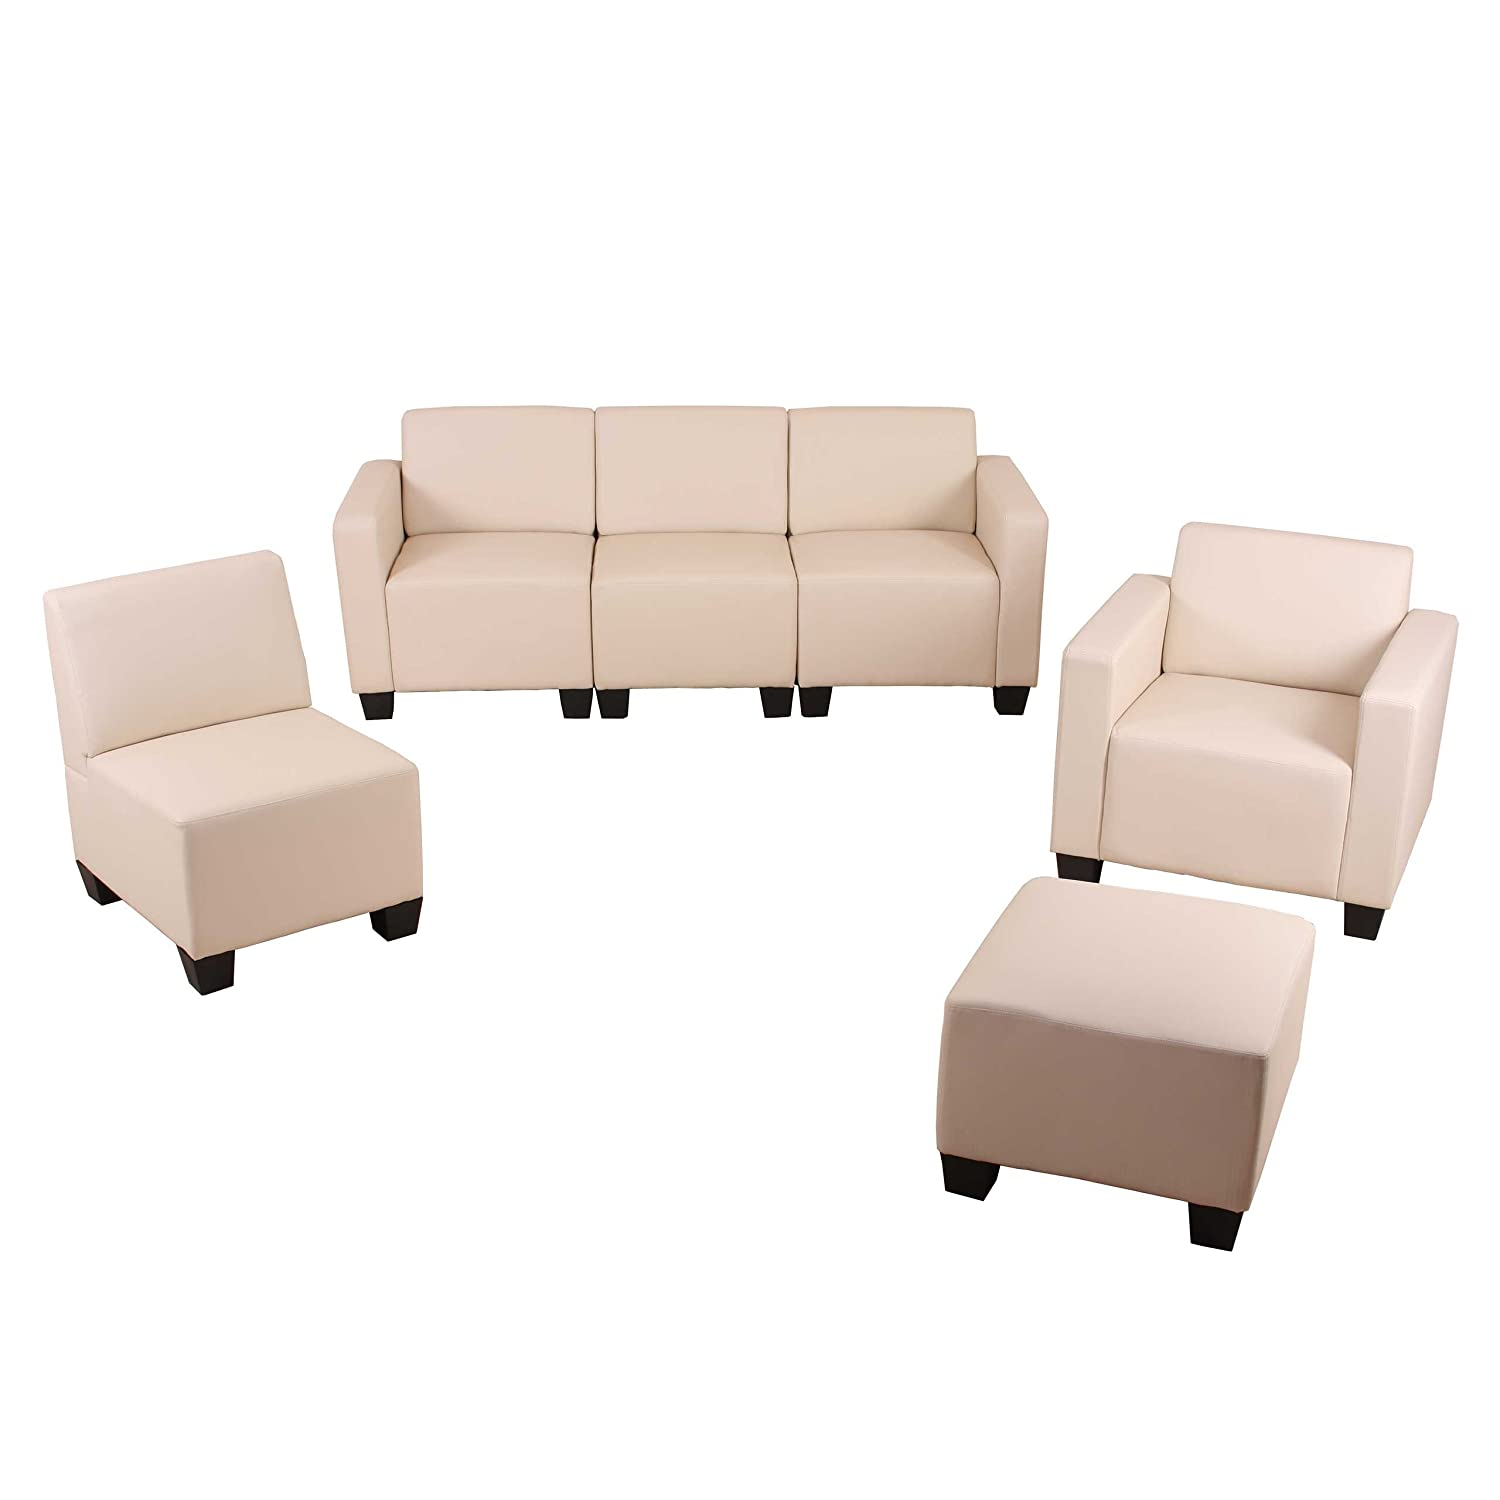 modular sofa system couch garnitur lyon 3 1 1 1 kunstleder creme g nstig bestellen. Black Bedroom Furniture Sets. Home Design Ideas